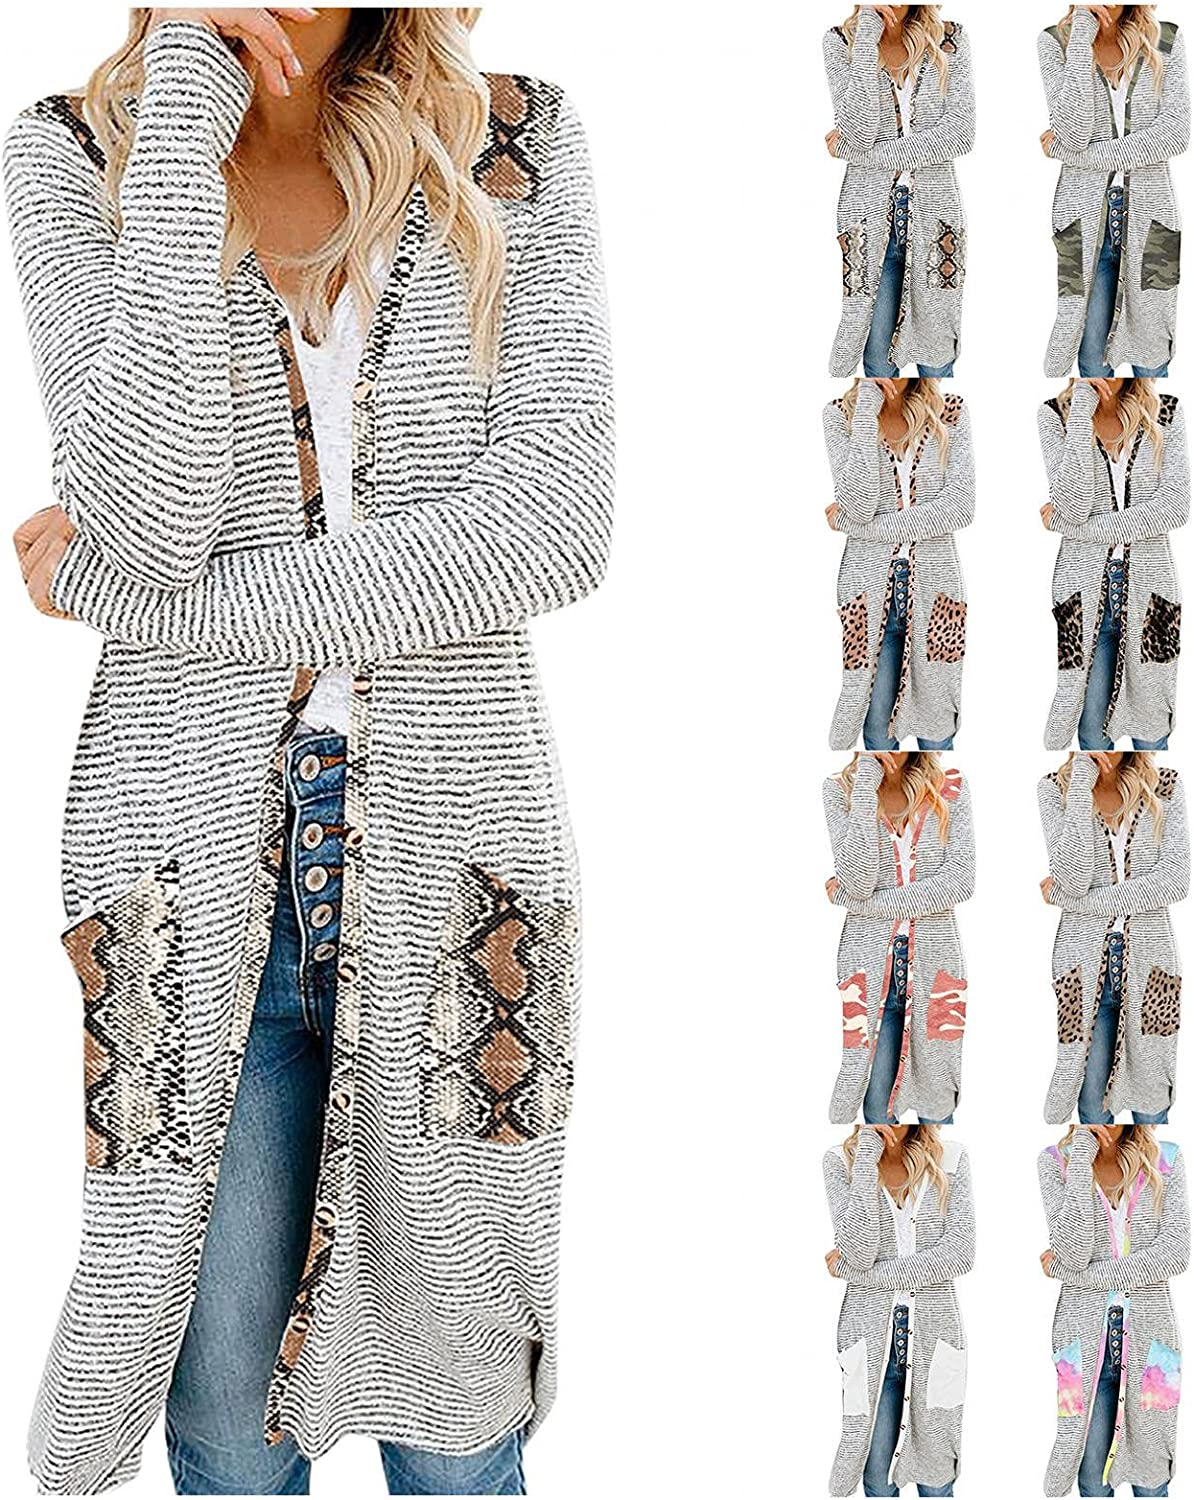 AODONG Cardigan for Women Summer Lightweight Long Sleeve Open Front Soft Knit Cardigan Sweater Outerwear with Pockets